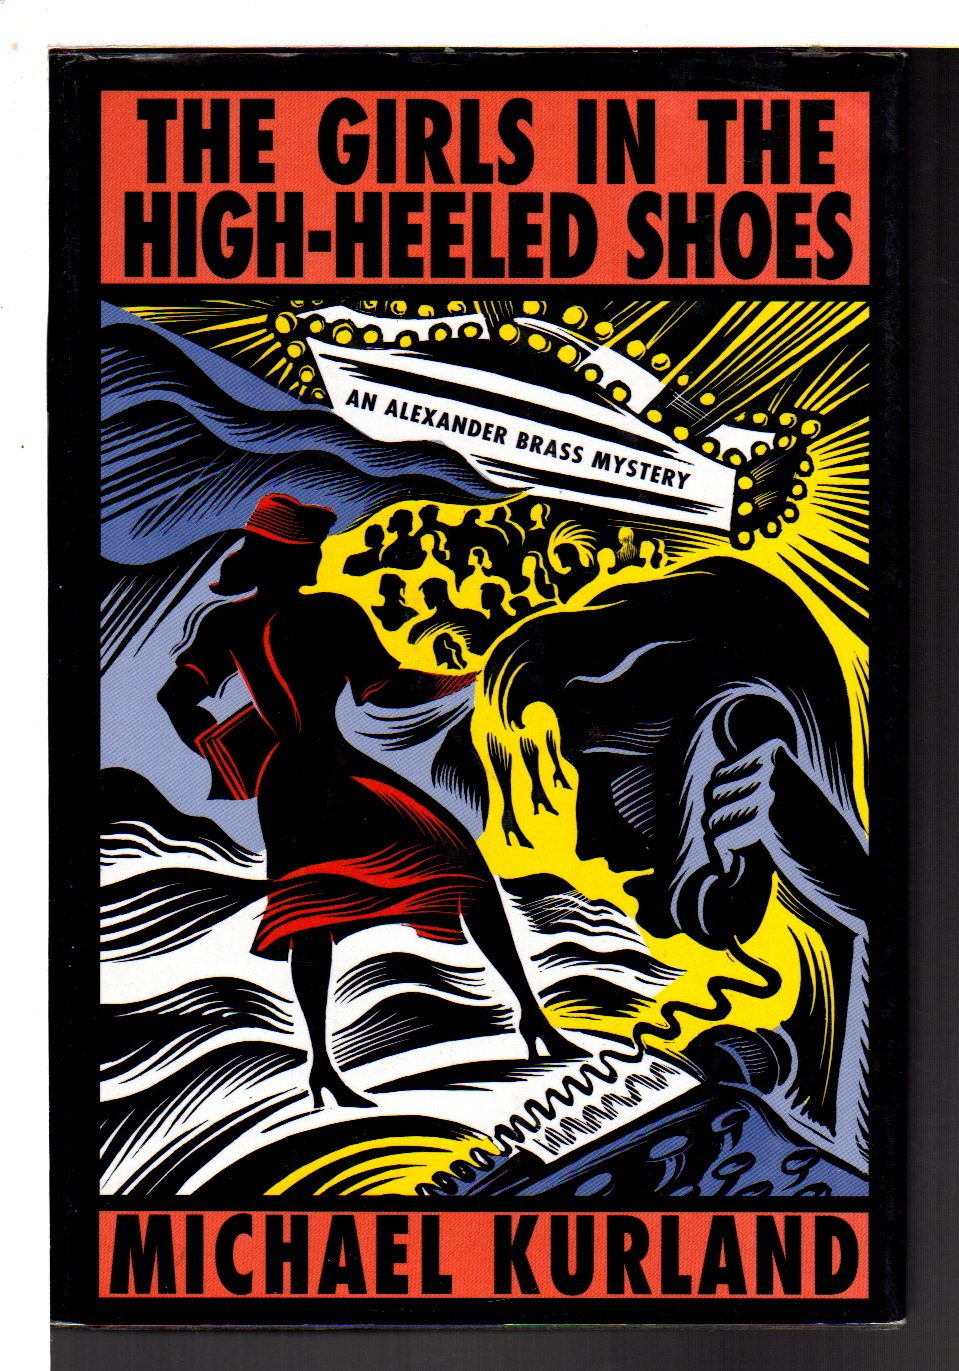 KURLAND, MICHAEL. - THE GIRLS IN THE HIGH-HEELED SHOES.